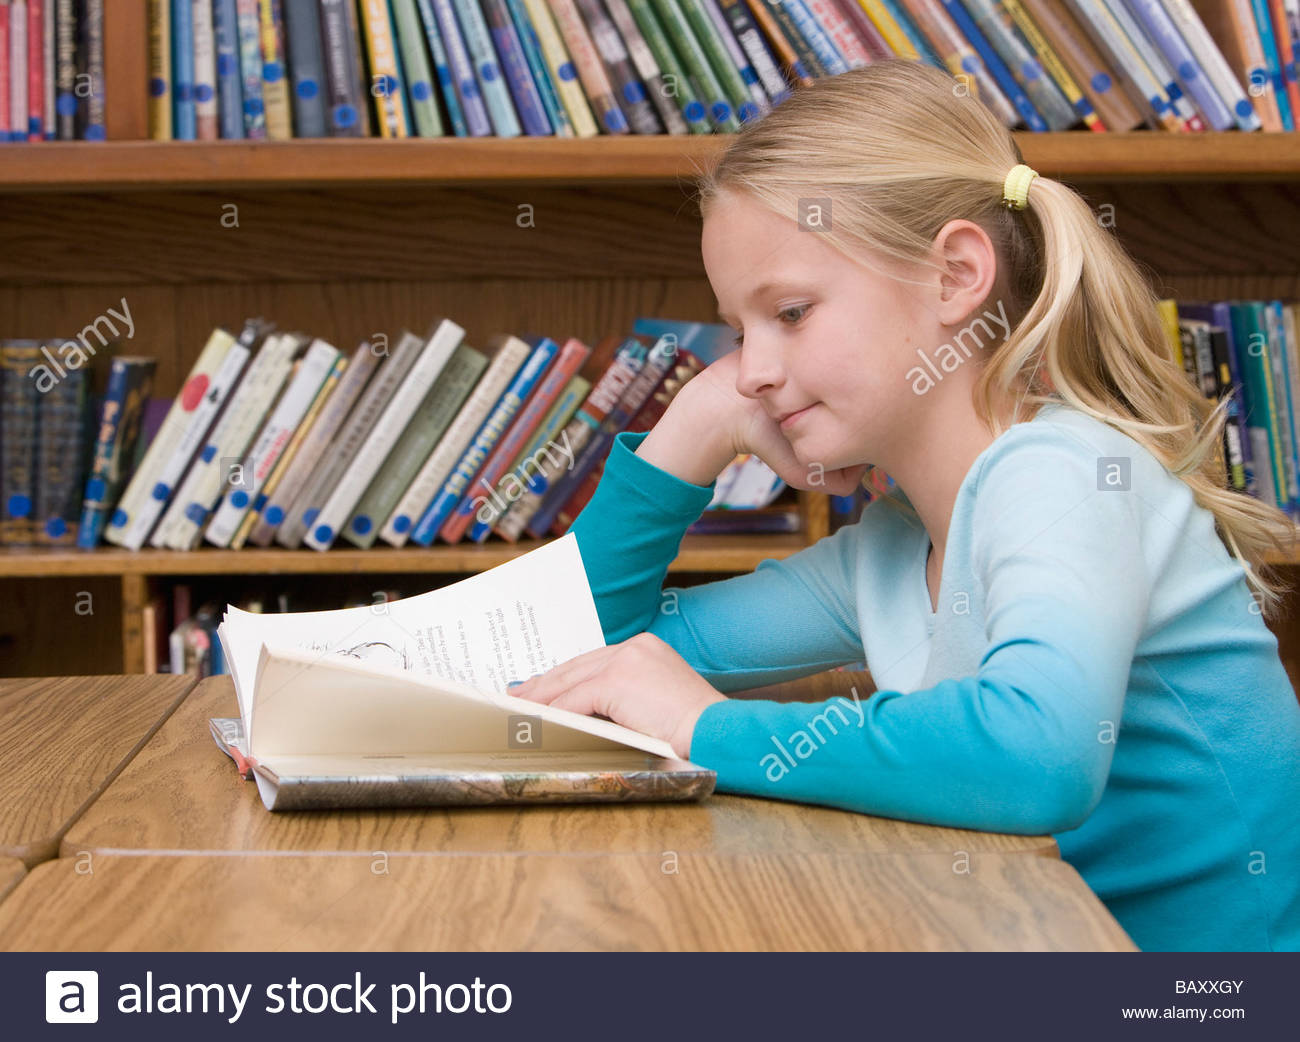 Girl reading book in school library - Stock Image